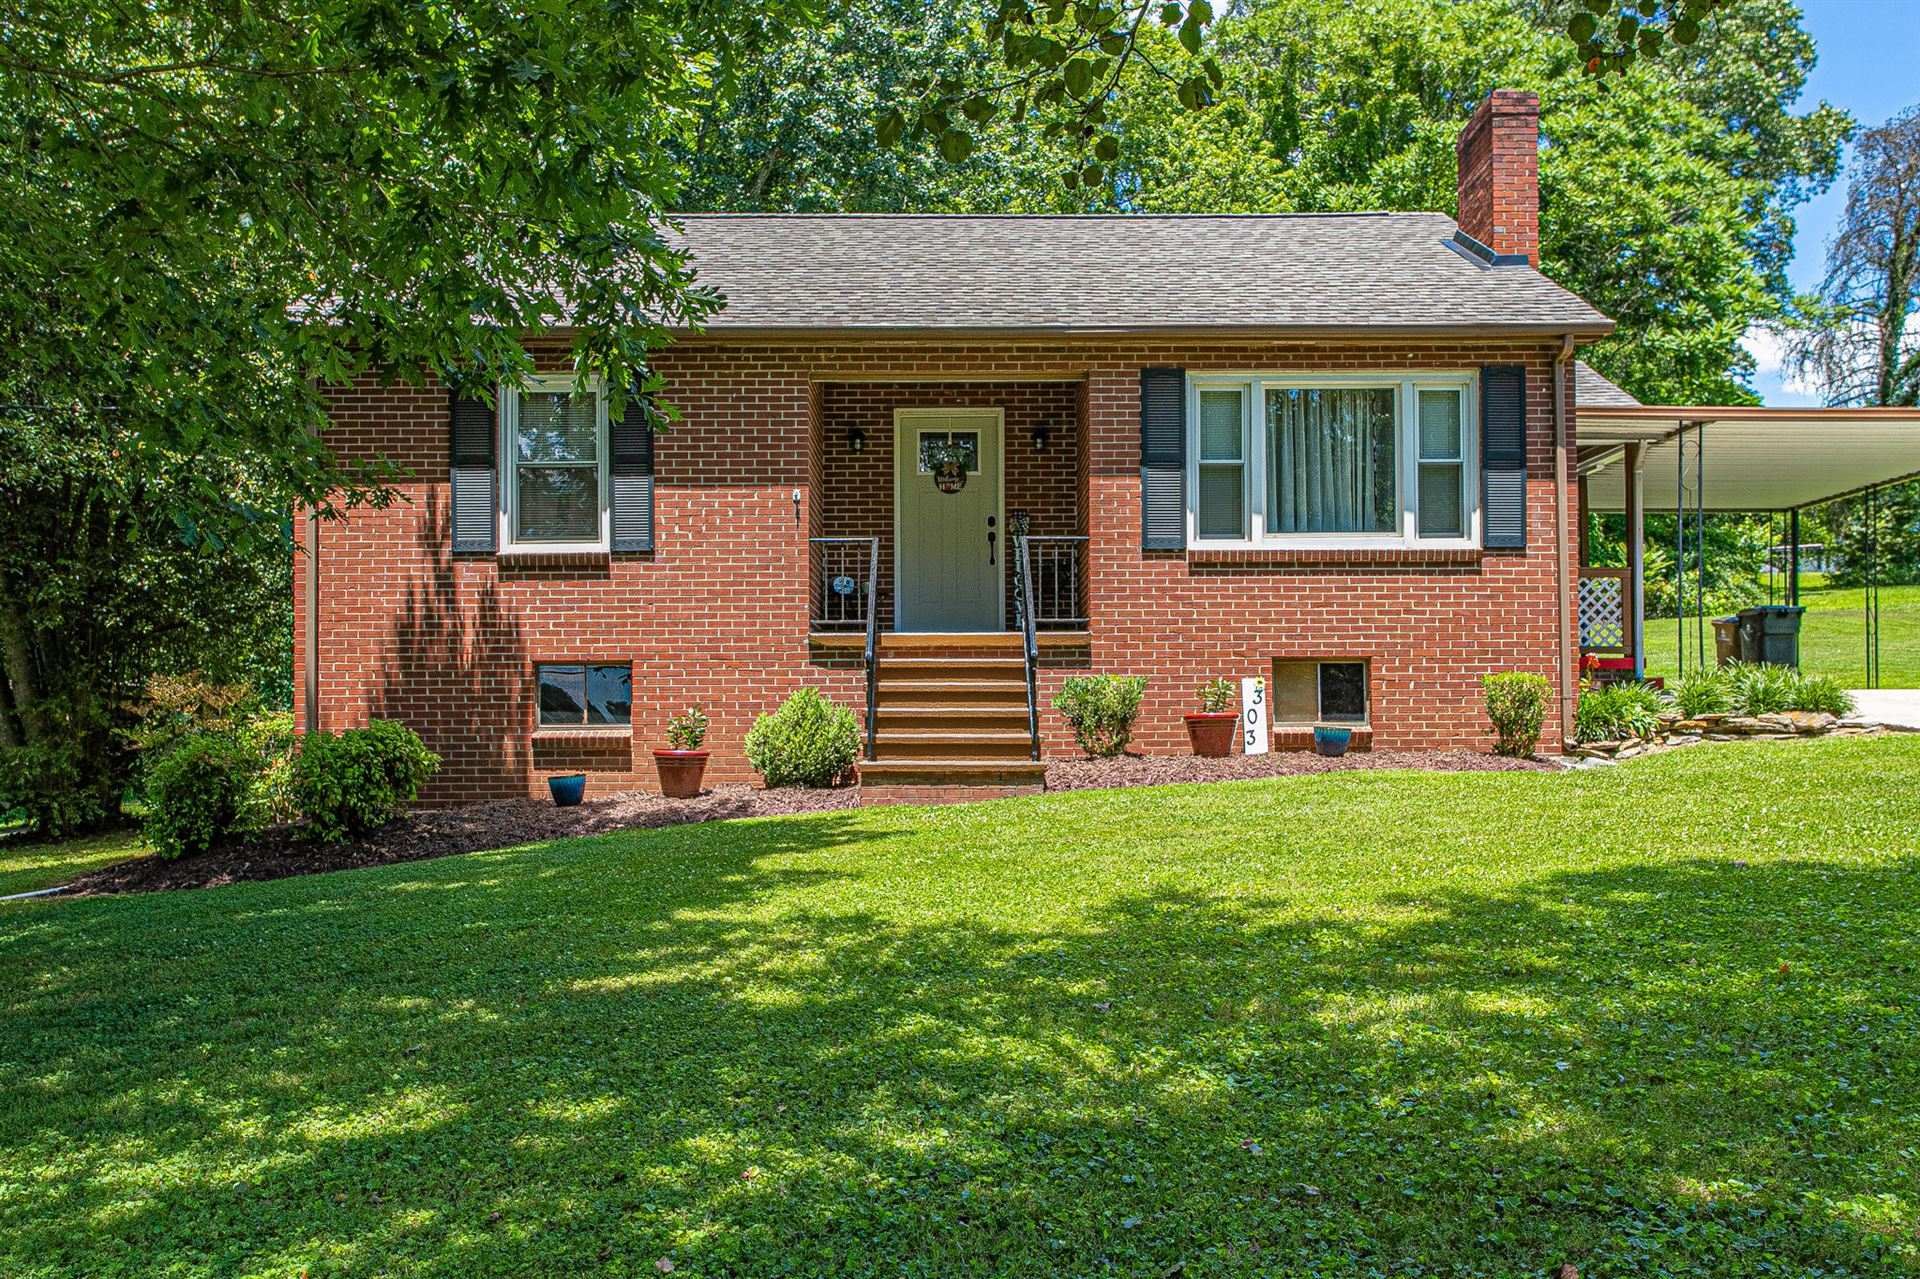 Photo of 303 Burns Rd, Knoxville, TN 37914 (MLS # 1156957)